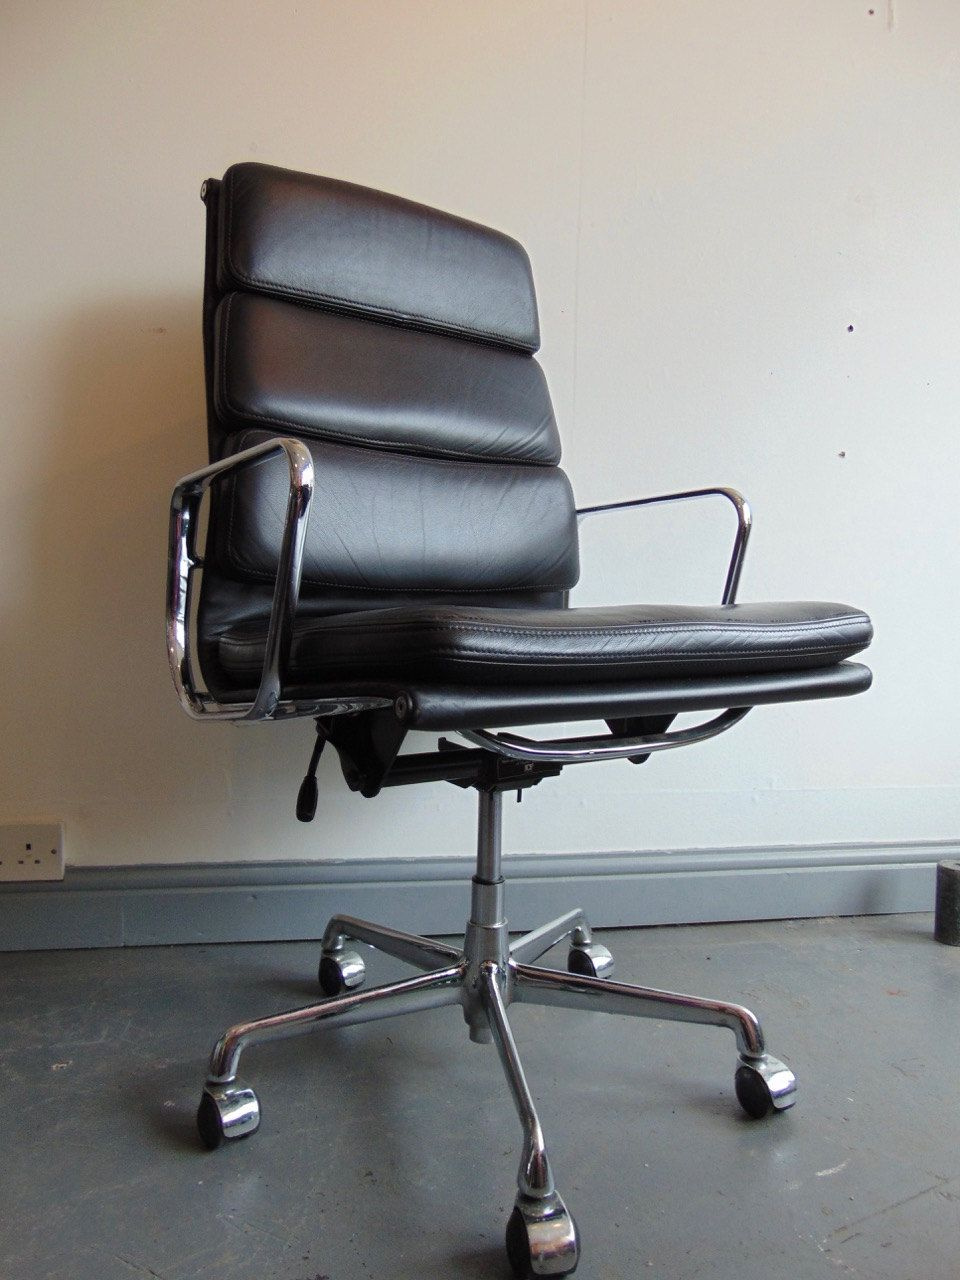 An Original Vintage Soft Pad High Back Black Leather Office Chair By Charles Eames For Icf Used Office Chairs Office Chair Chair